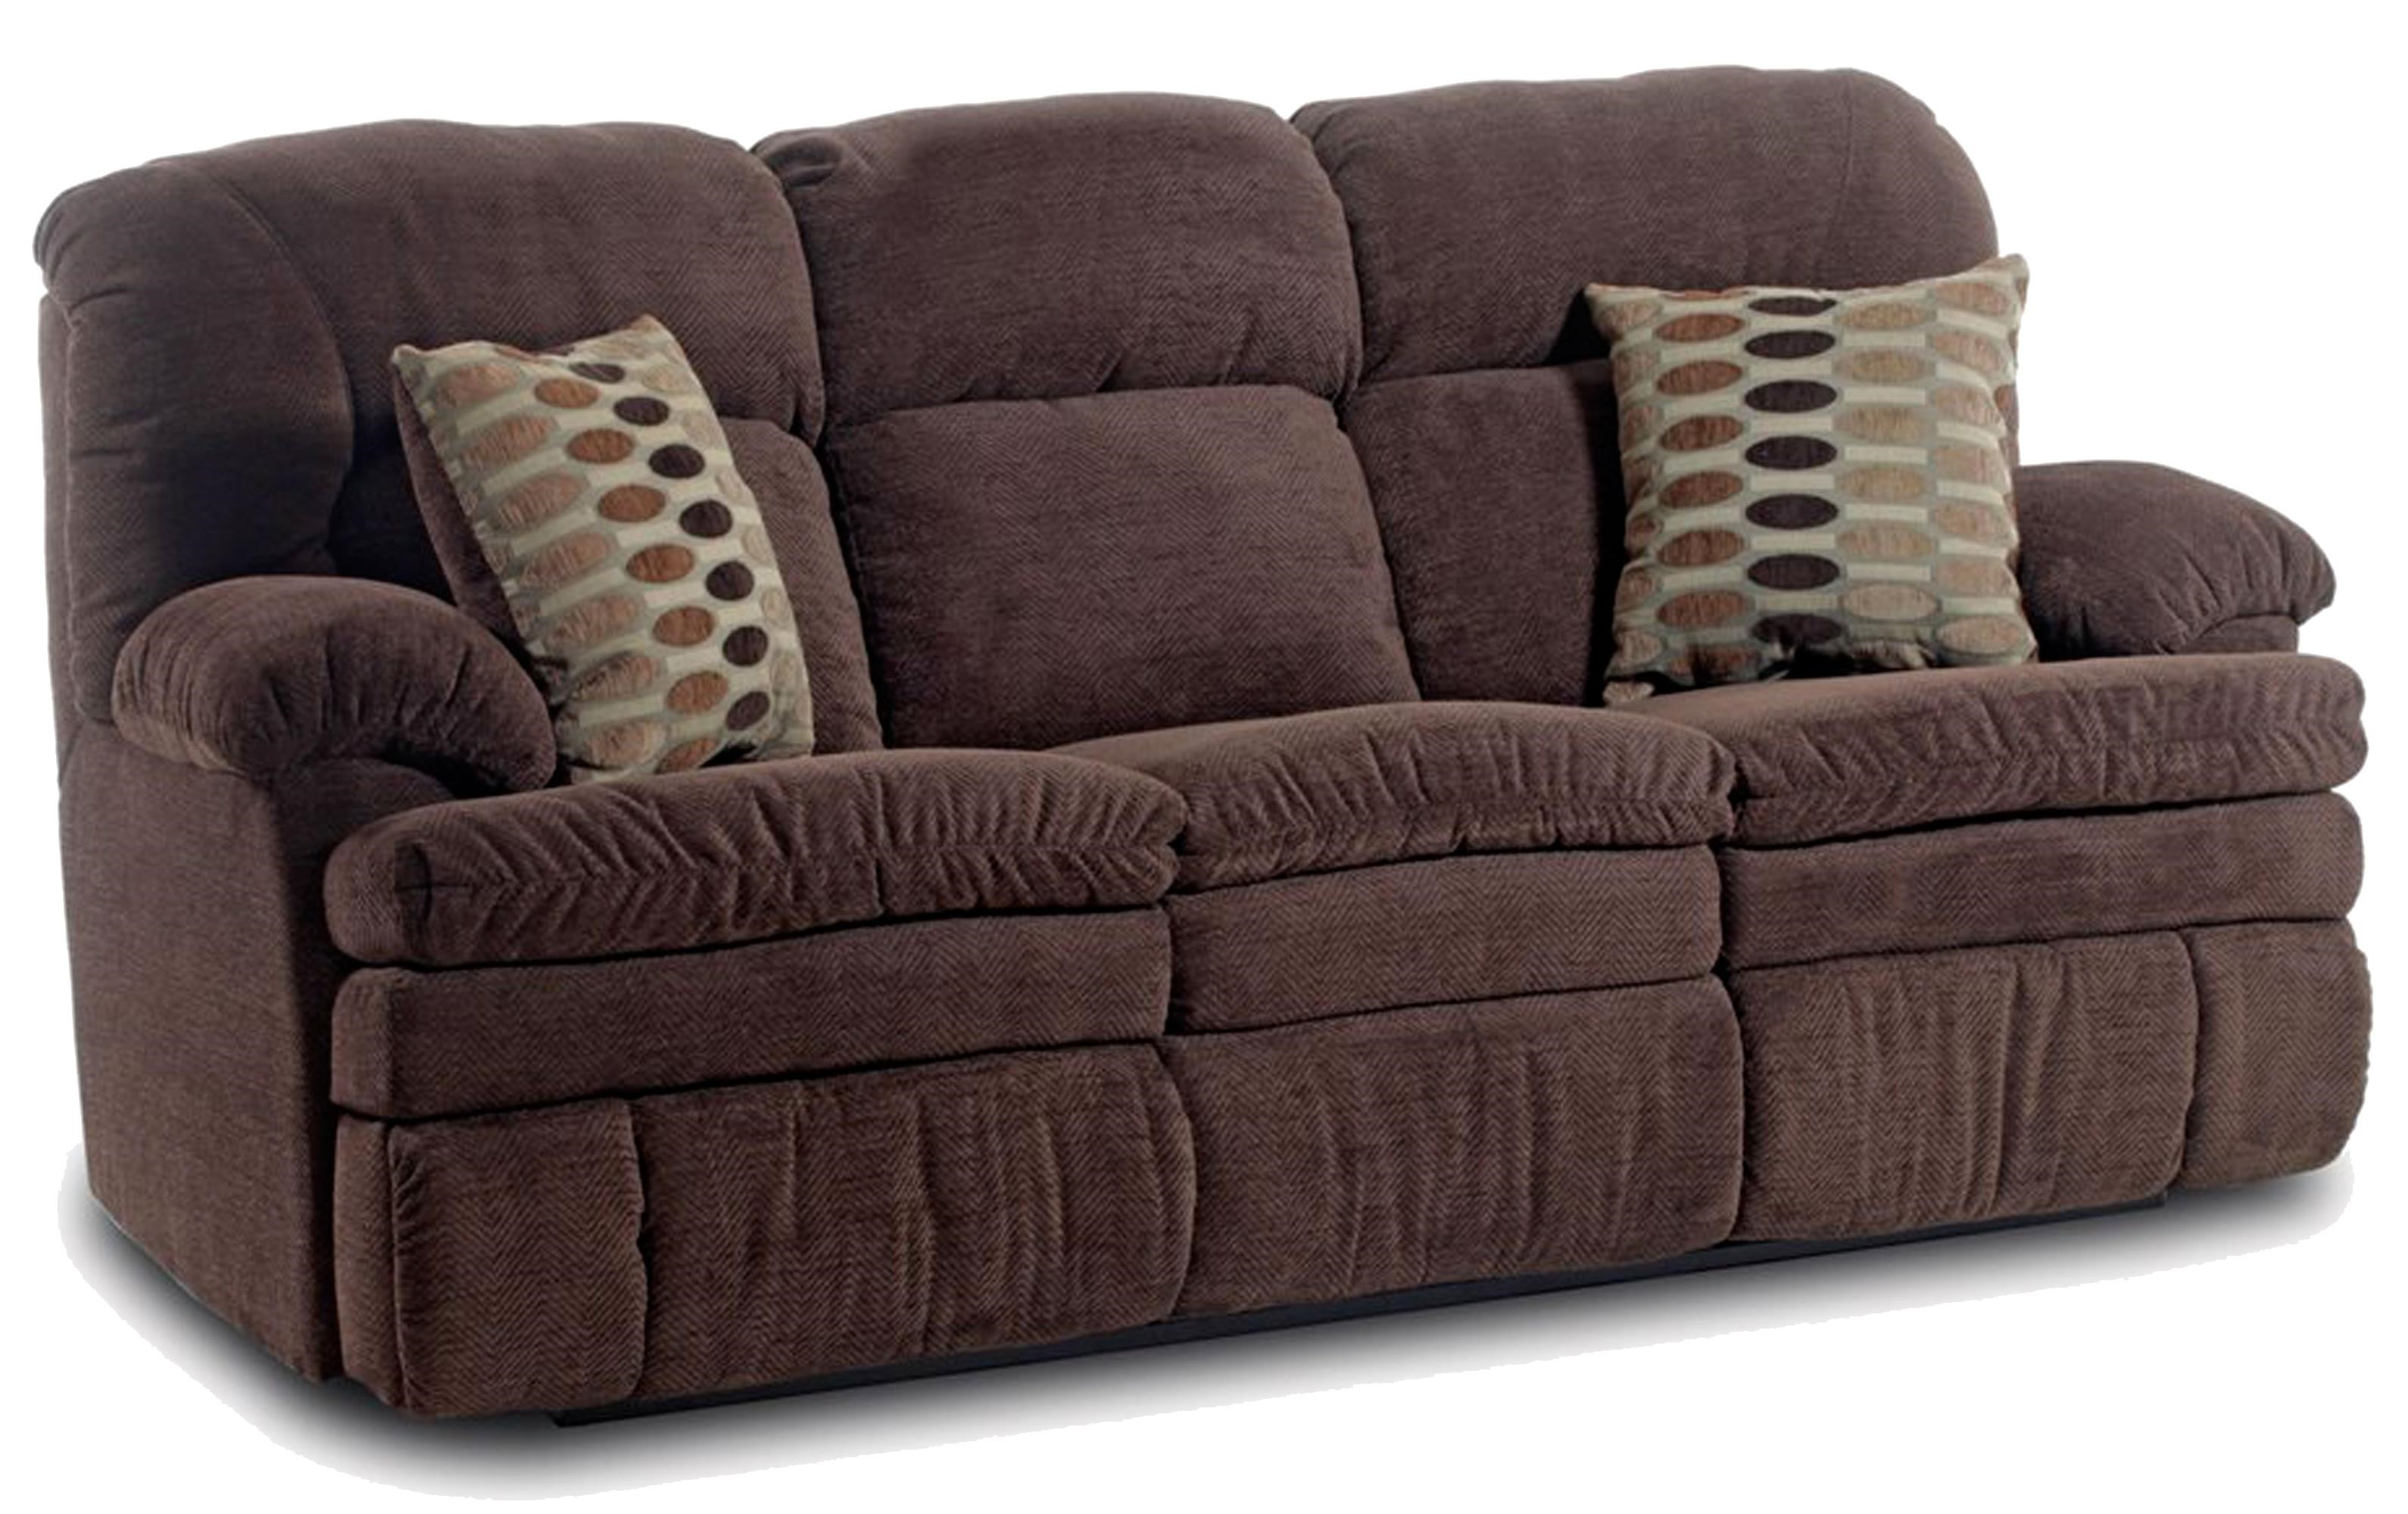 HomeStretch 103 Chocolate Series Double Reclining Sofa With Oversized Top  Seat Cushion